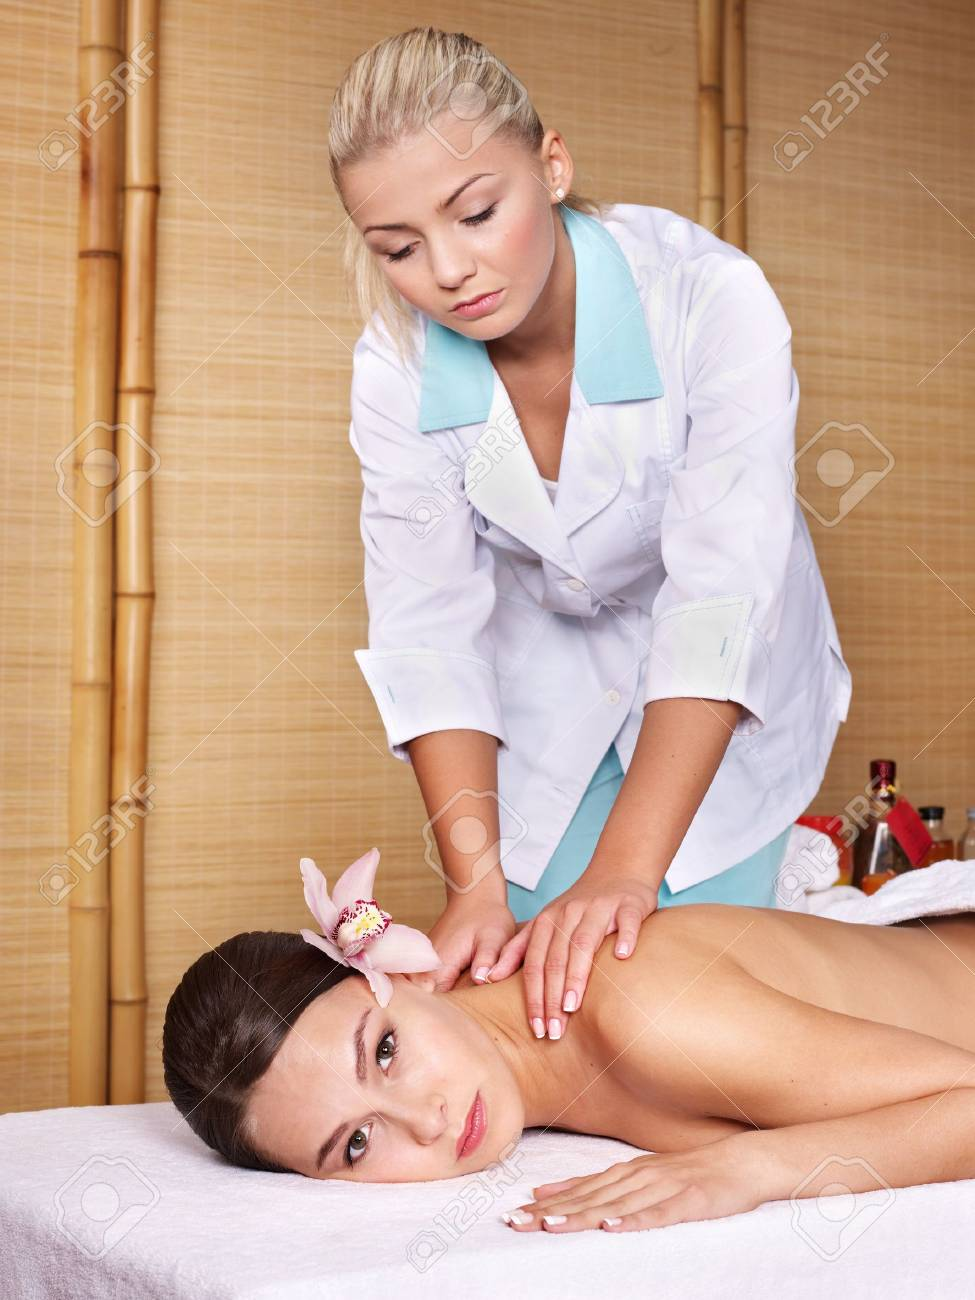 Young beautiful woman on massage table in beauty spa.  Series. Stock Photo - 7779750